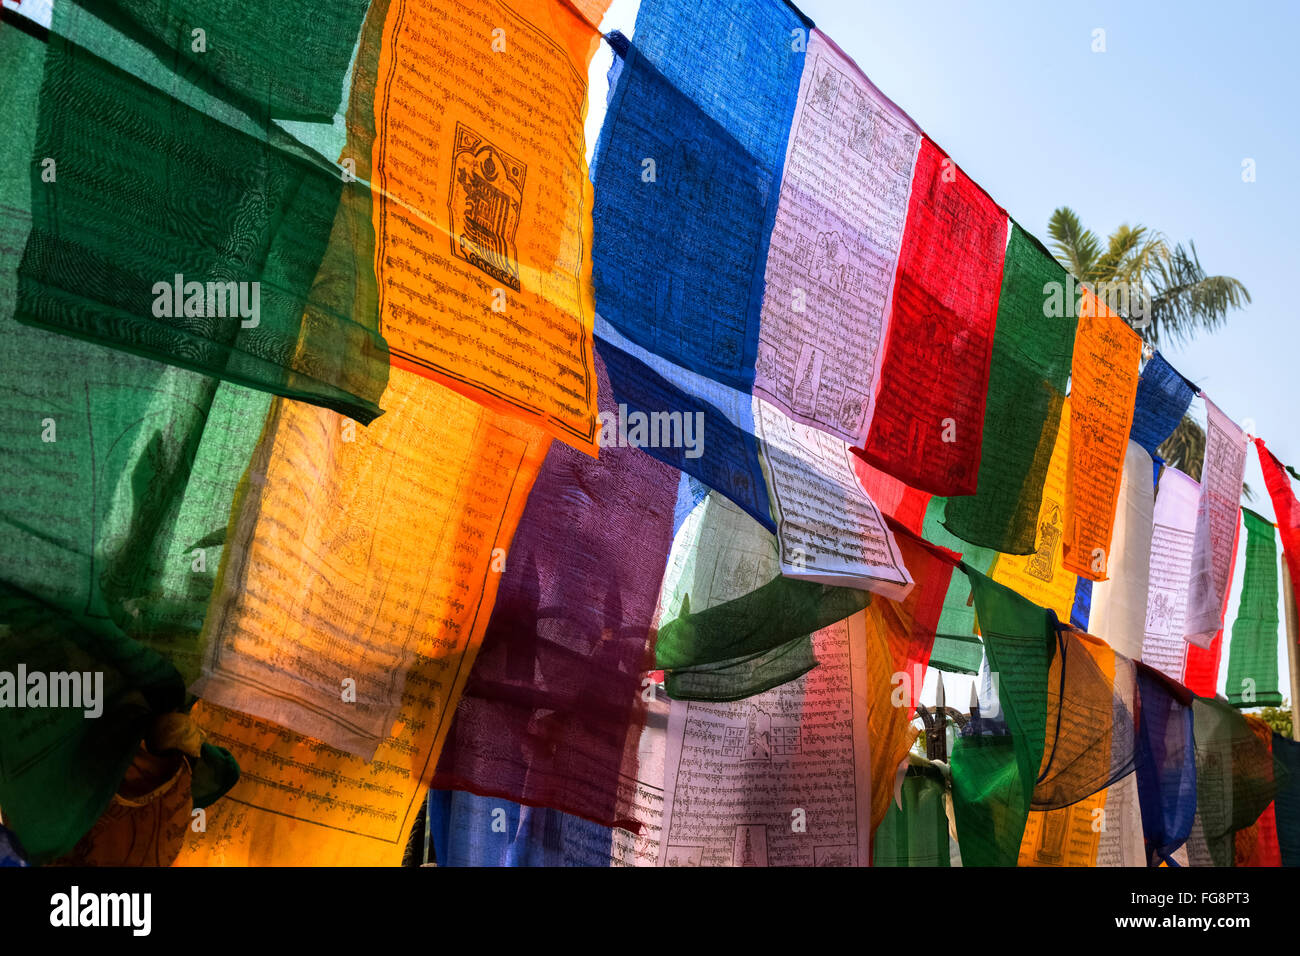 Tibetan prayer flags in Sarnath Temple, Varanasi, Uttar Pradesh, India - Stock Image